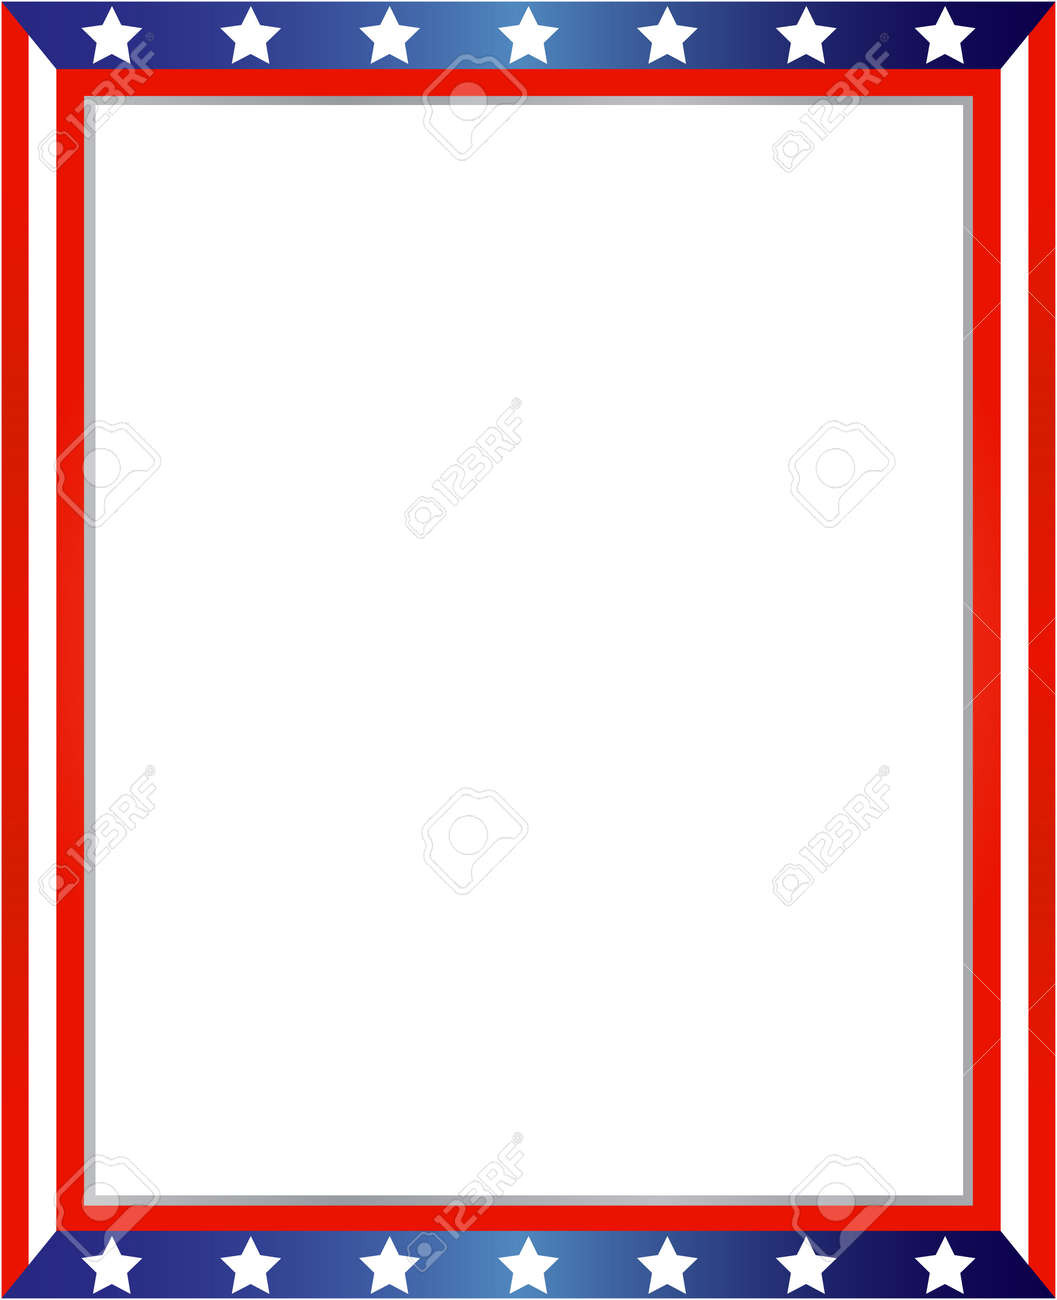 USA Flag Frame On White Background With Copy Space For Your Text ...